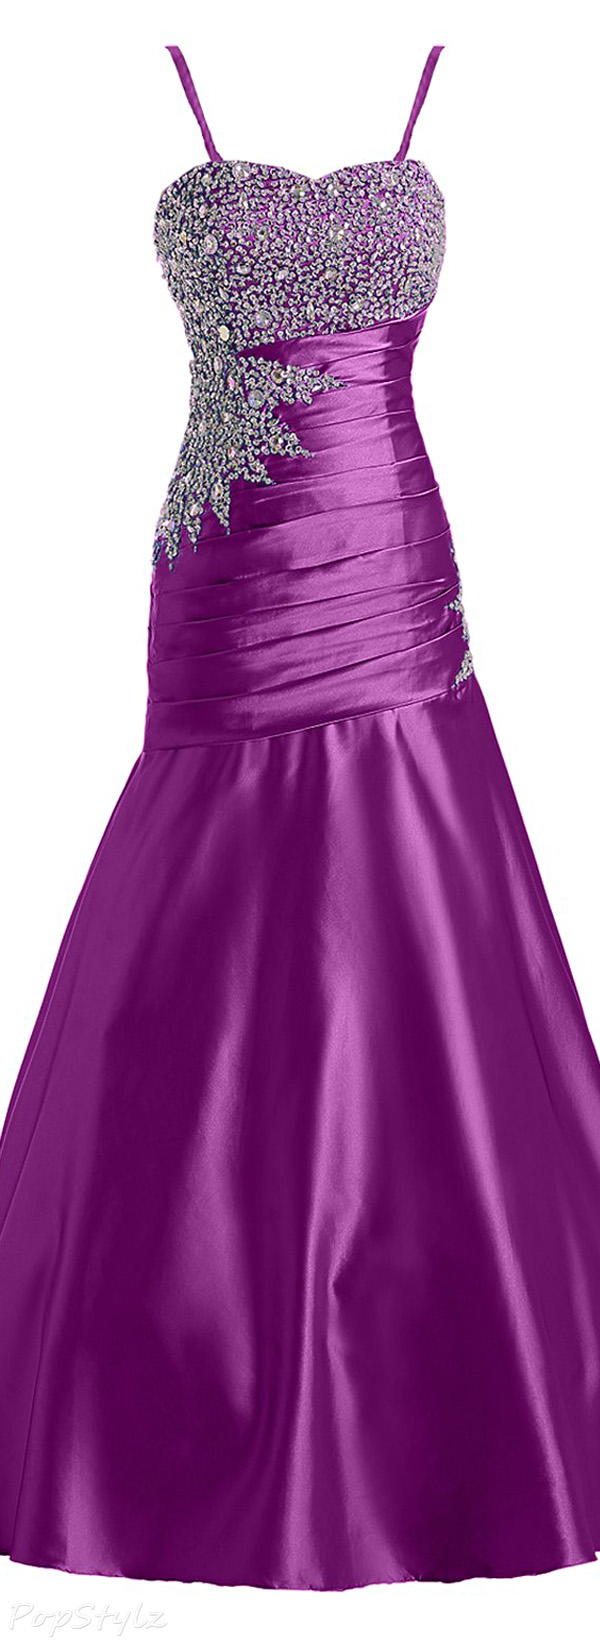 Sunvary Mermaid Rhinestones Long Evening Gown